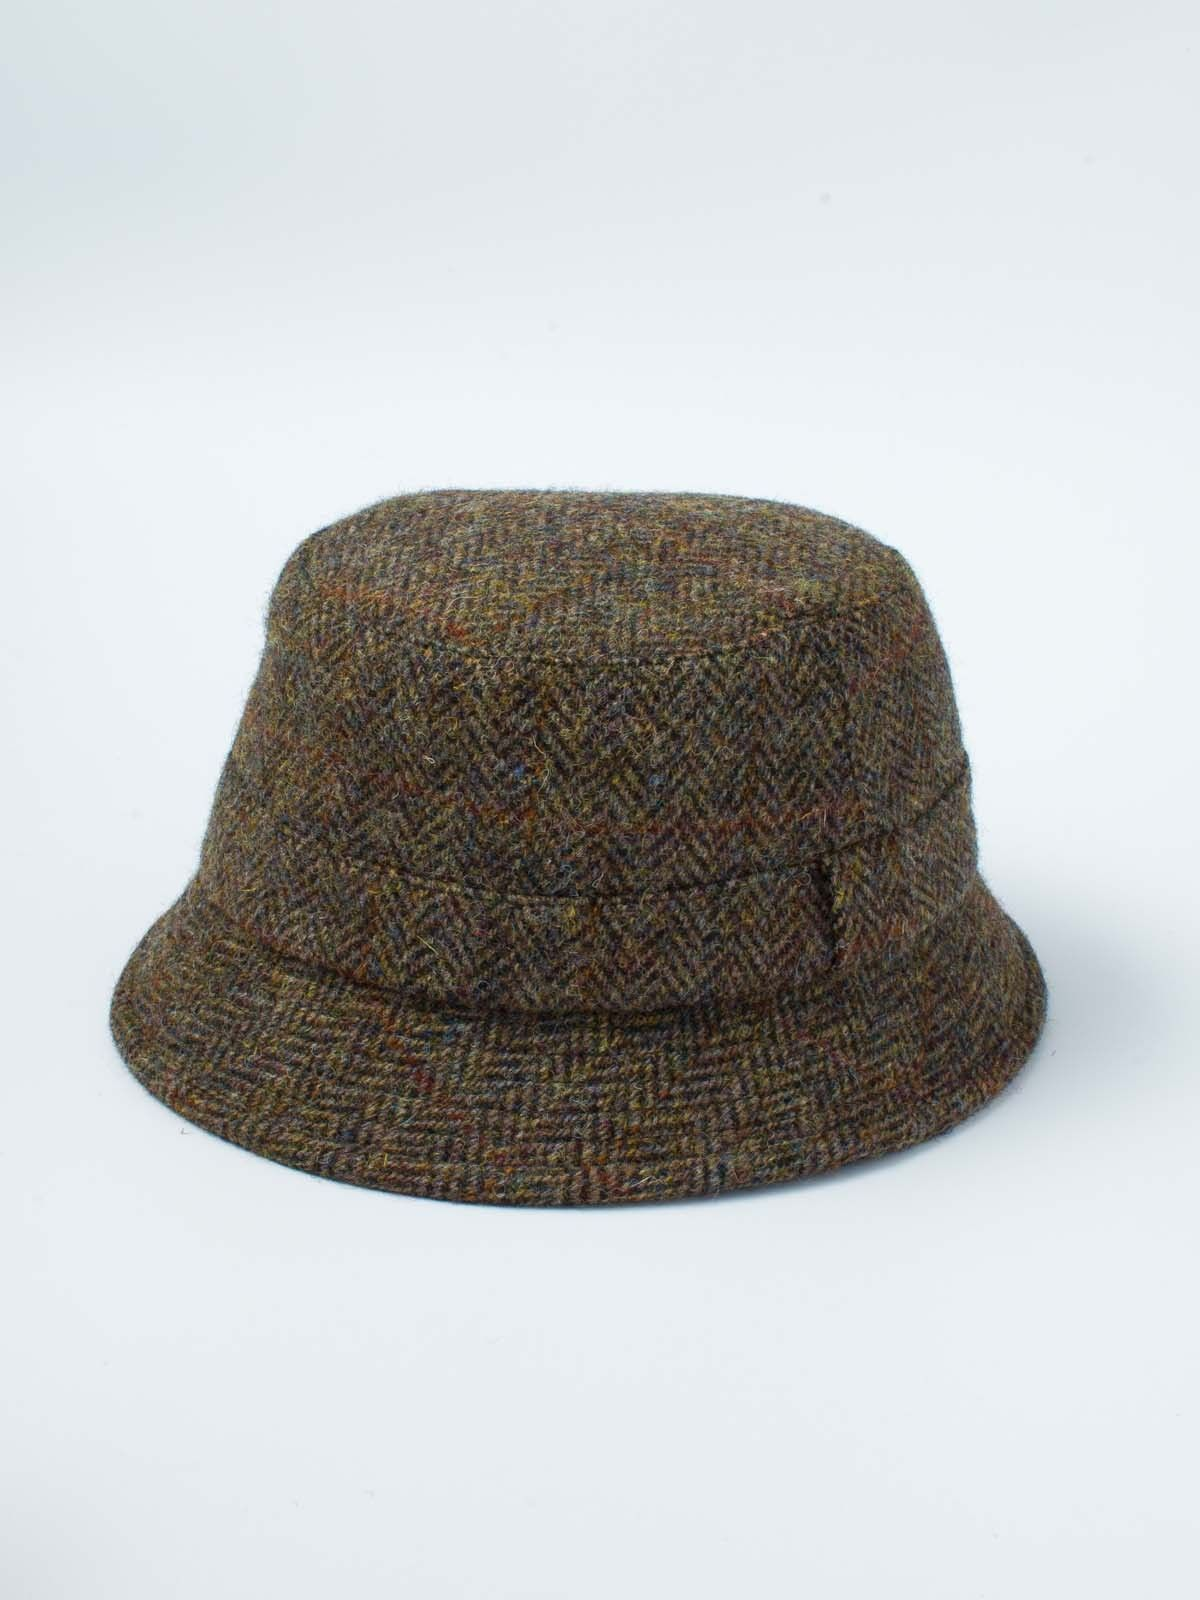 95d240a4d2d18 Harris Tweed Roll-Up Hat - Originally designed as a fly fisherman s hat  this famous Tweed hat is now quite at home in the town. Made to last